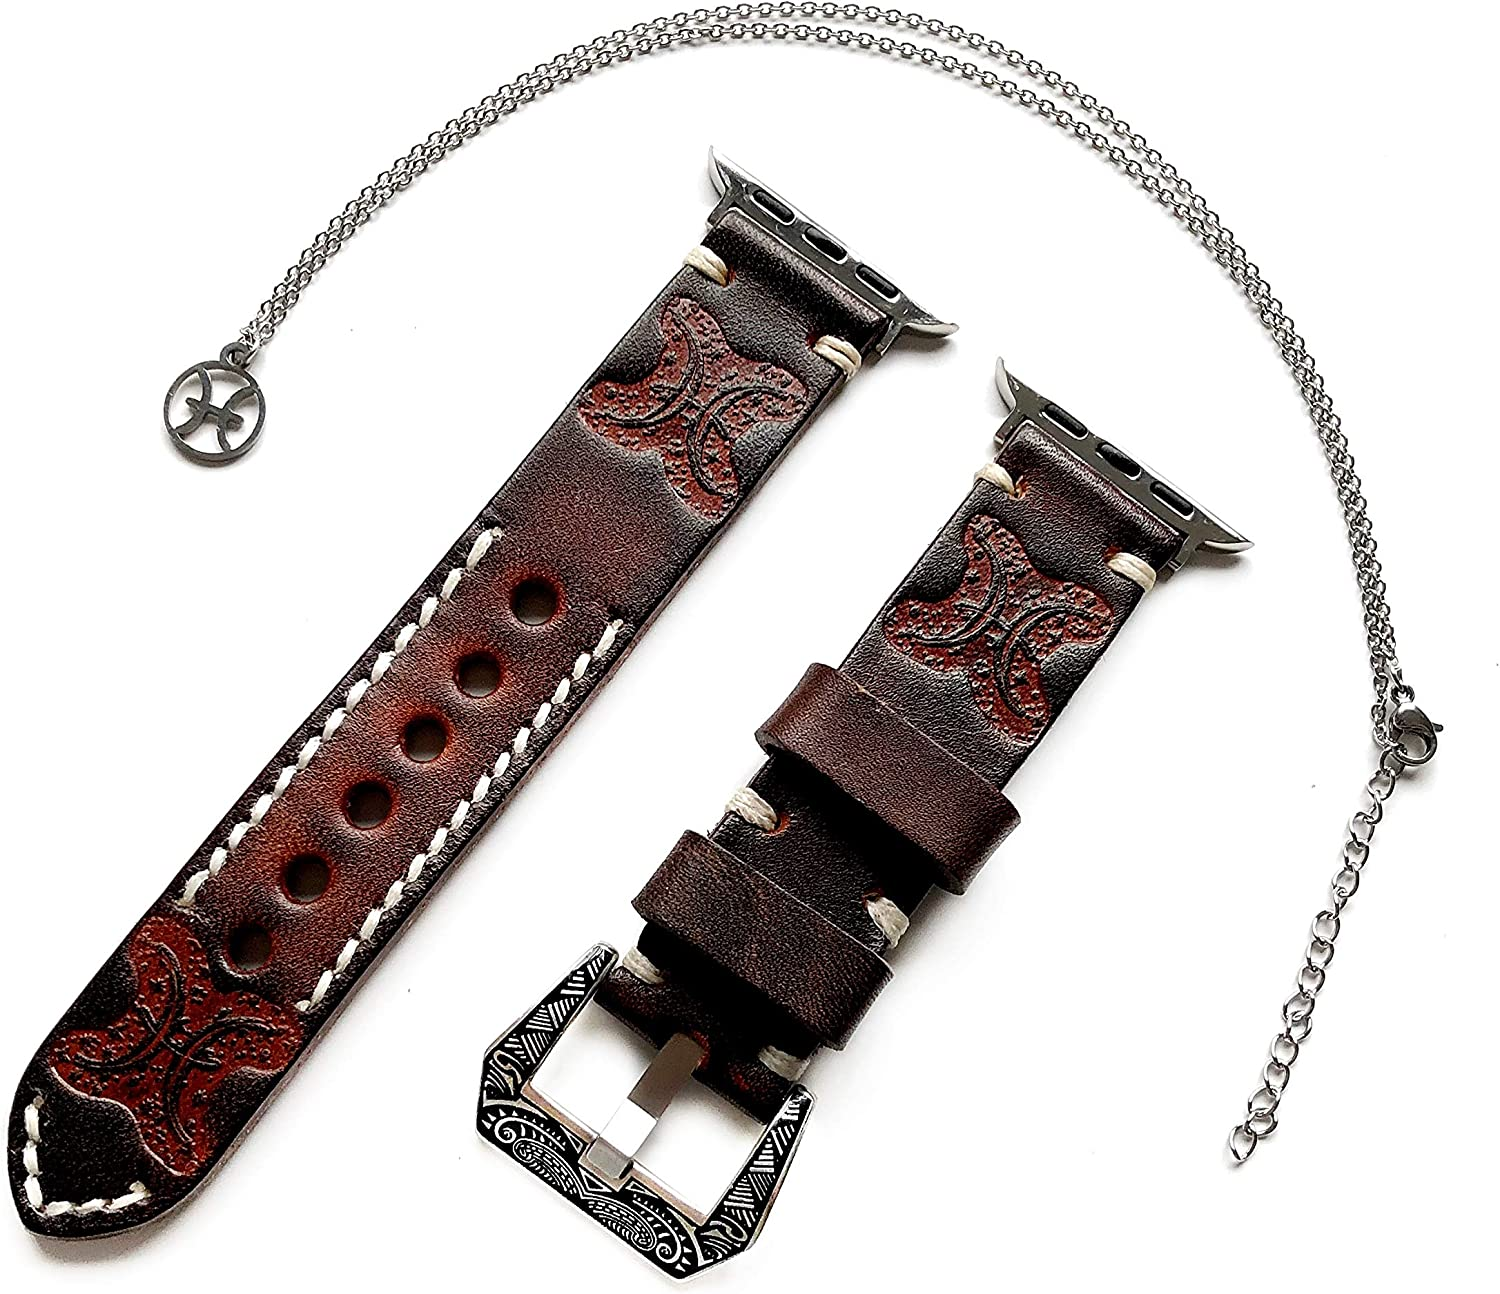 Pisces Zodiac Band Set Compatible with Apple Watch 38mm 40mm 42mm 44mm iWatch SE 6 5 4 3 2 1 All Series Leather Embossed Strap and 25